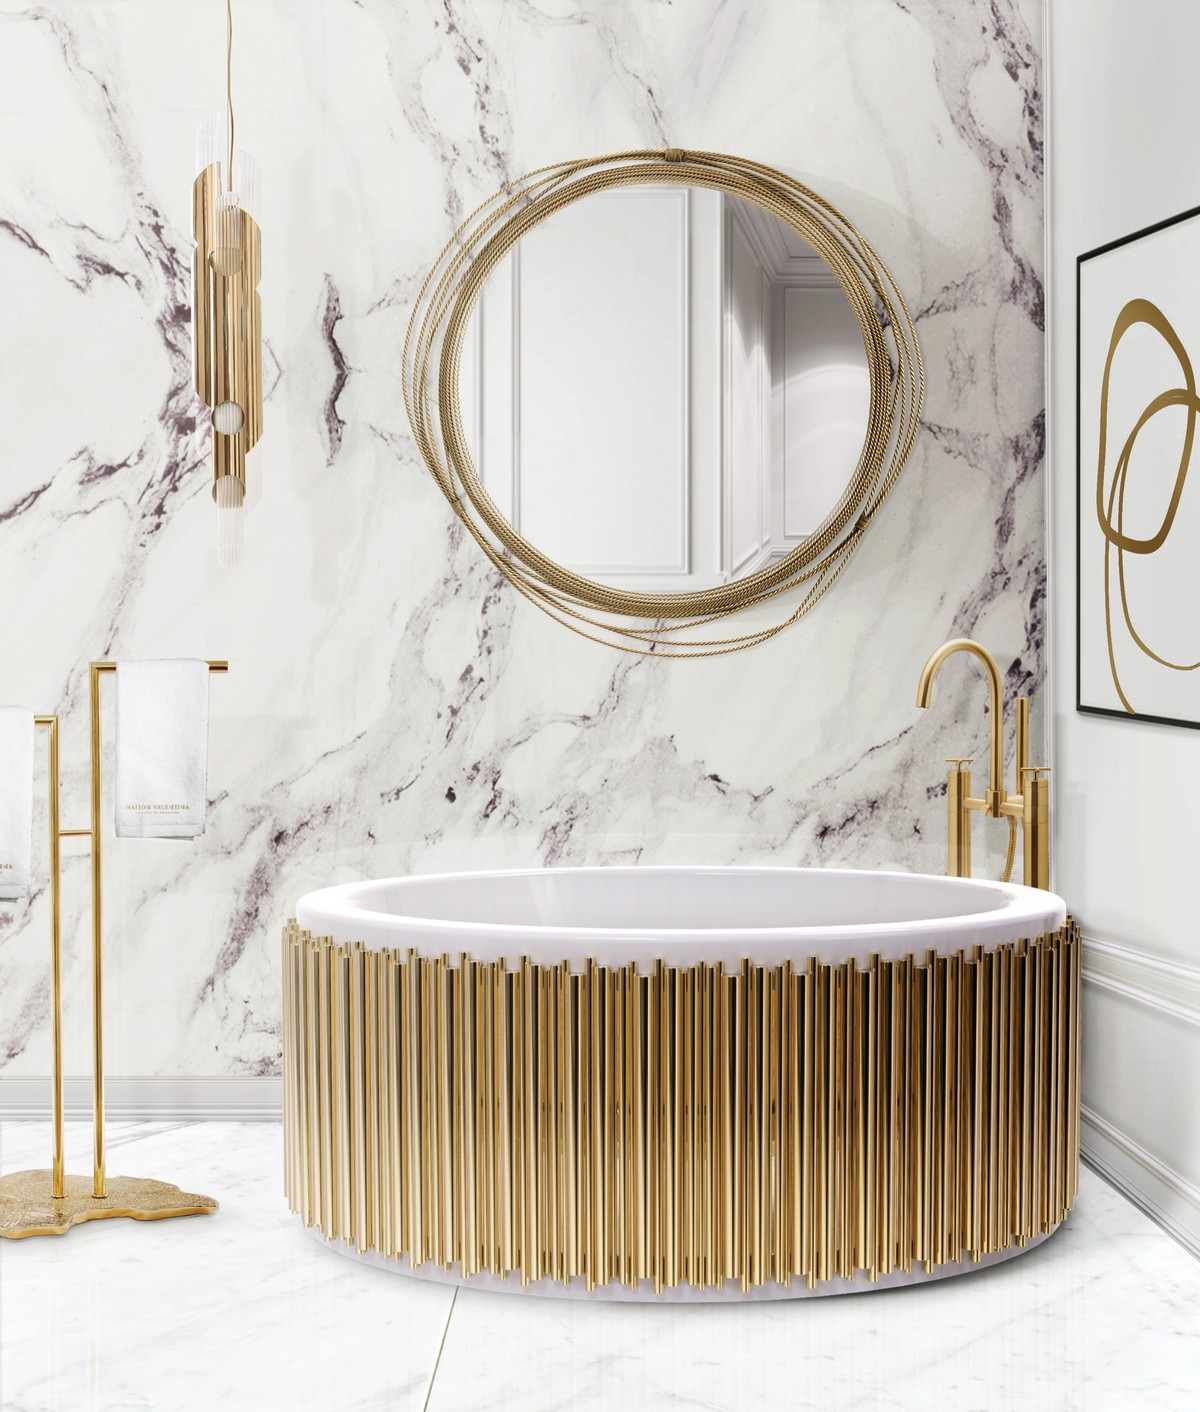 These Are The Essentials For You To Have A Luxury Bathroom